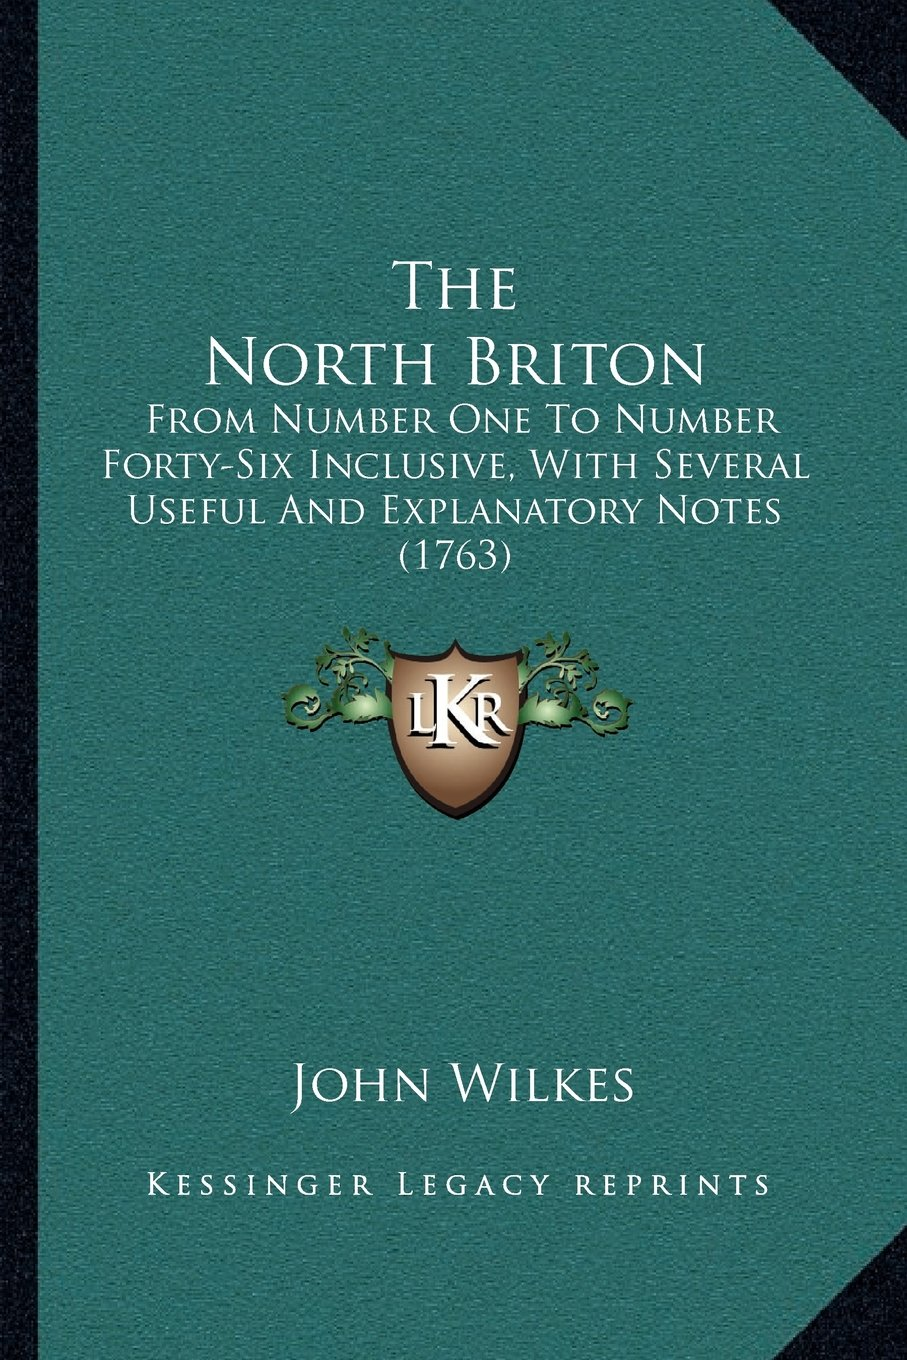 The North Briton: From Number One To Number Forty-Six Inclusive, With Several Useful And Explanatory Notes (1763) ebook